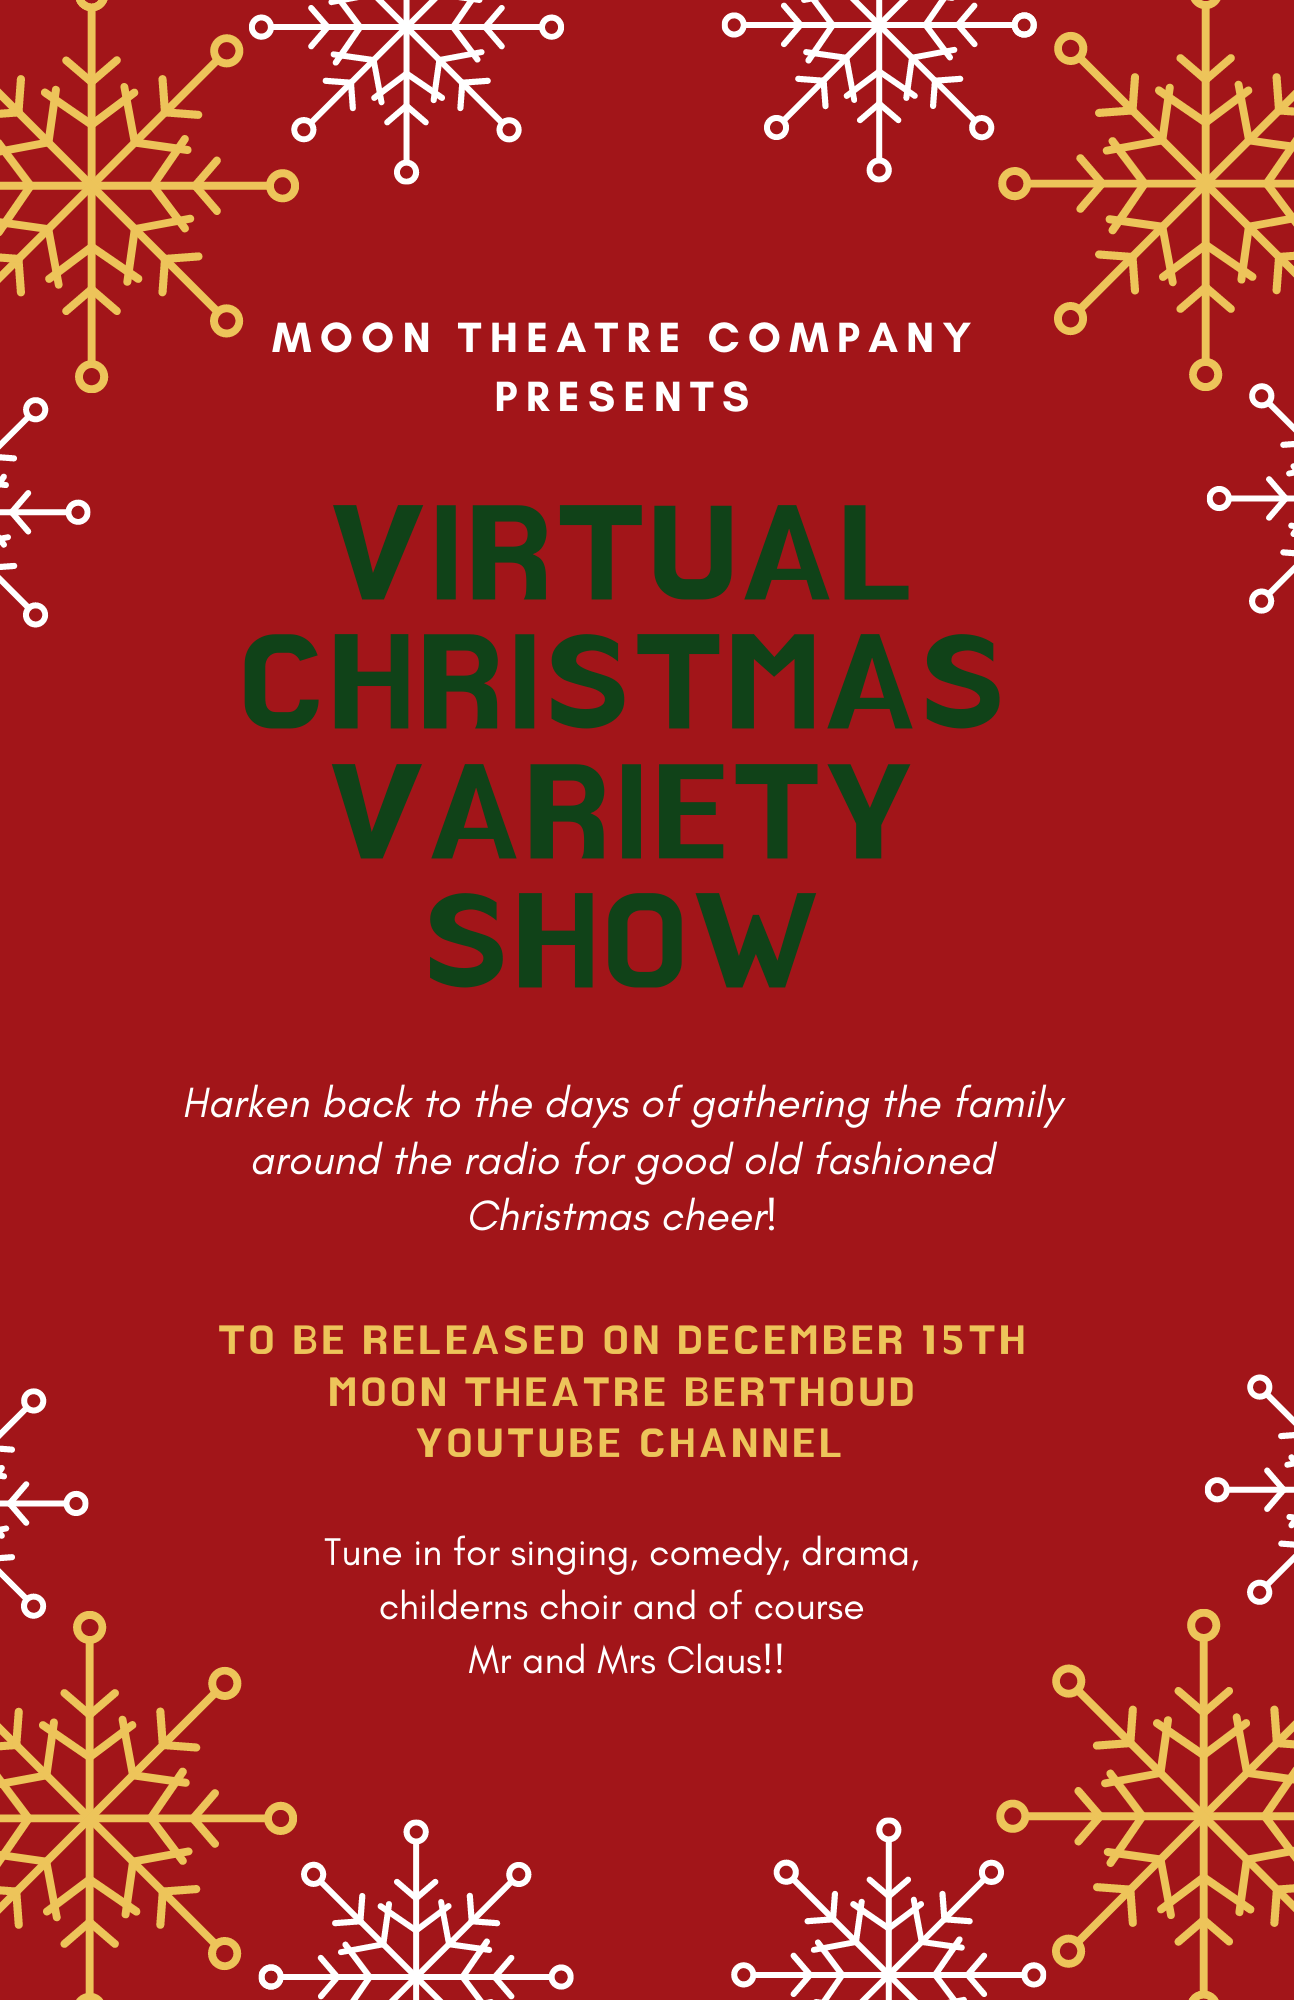 MOON THEATRE CHRISTMAS VARIETY SHOW | The Moon Theatre Company